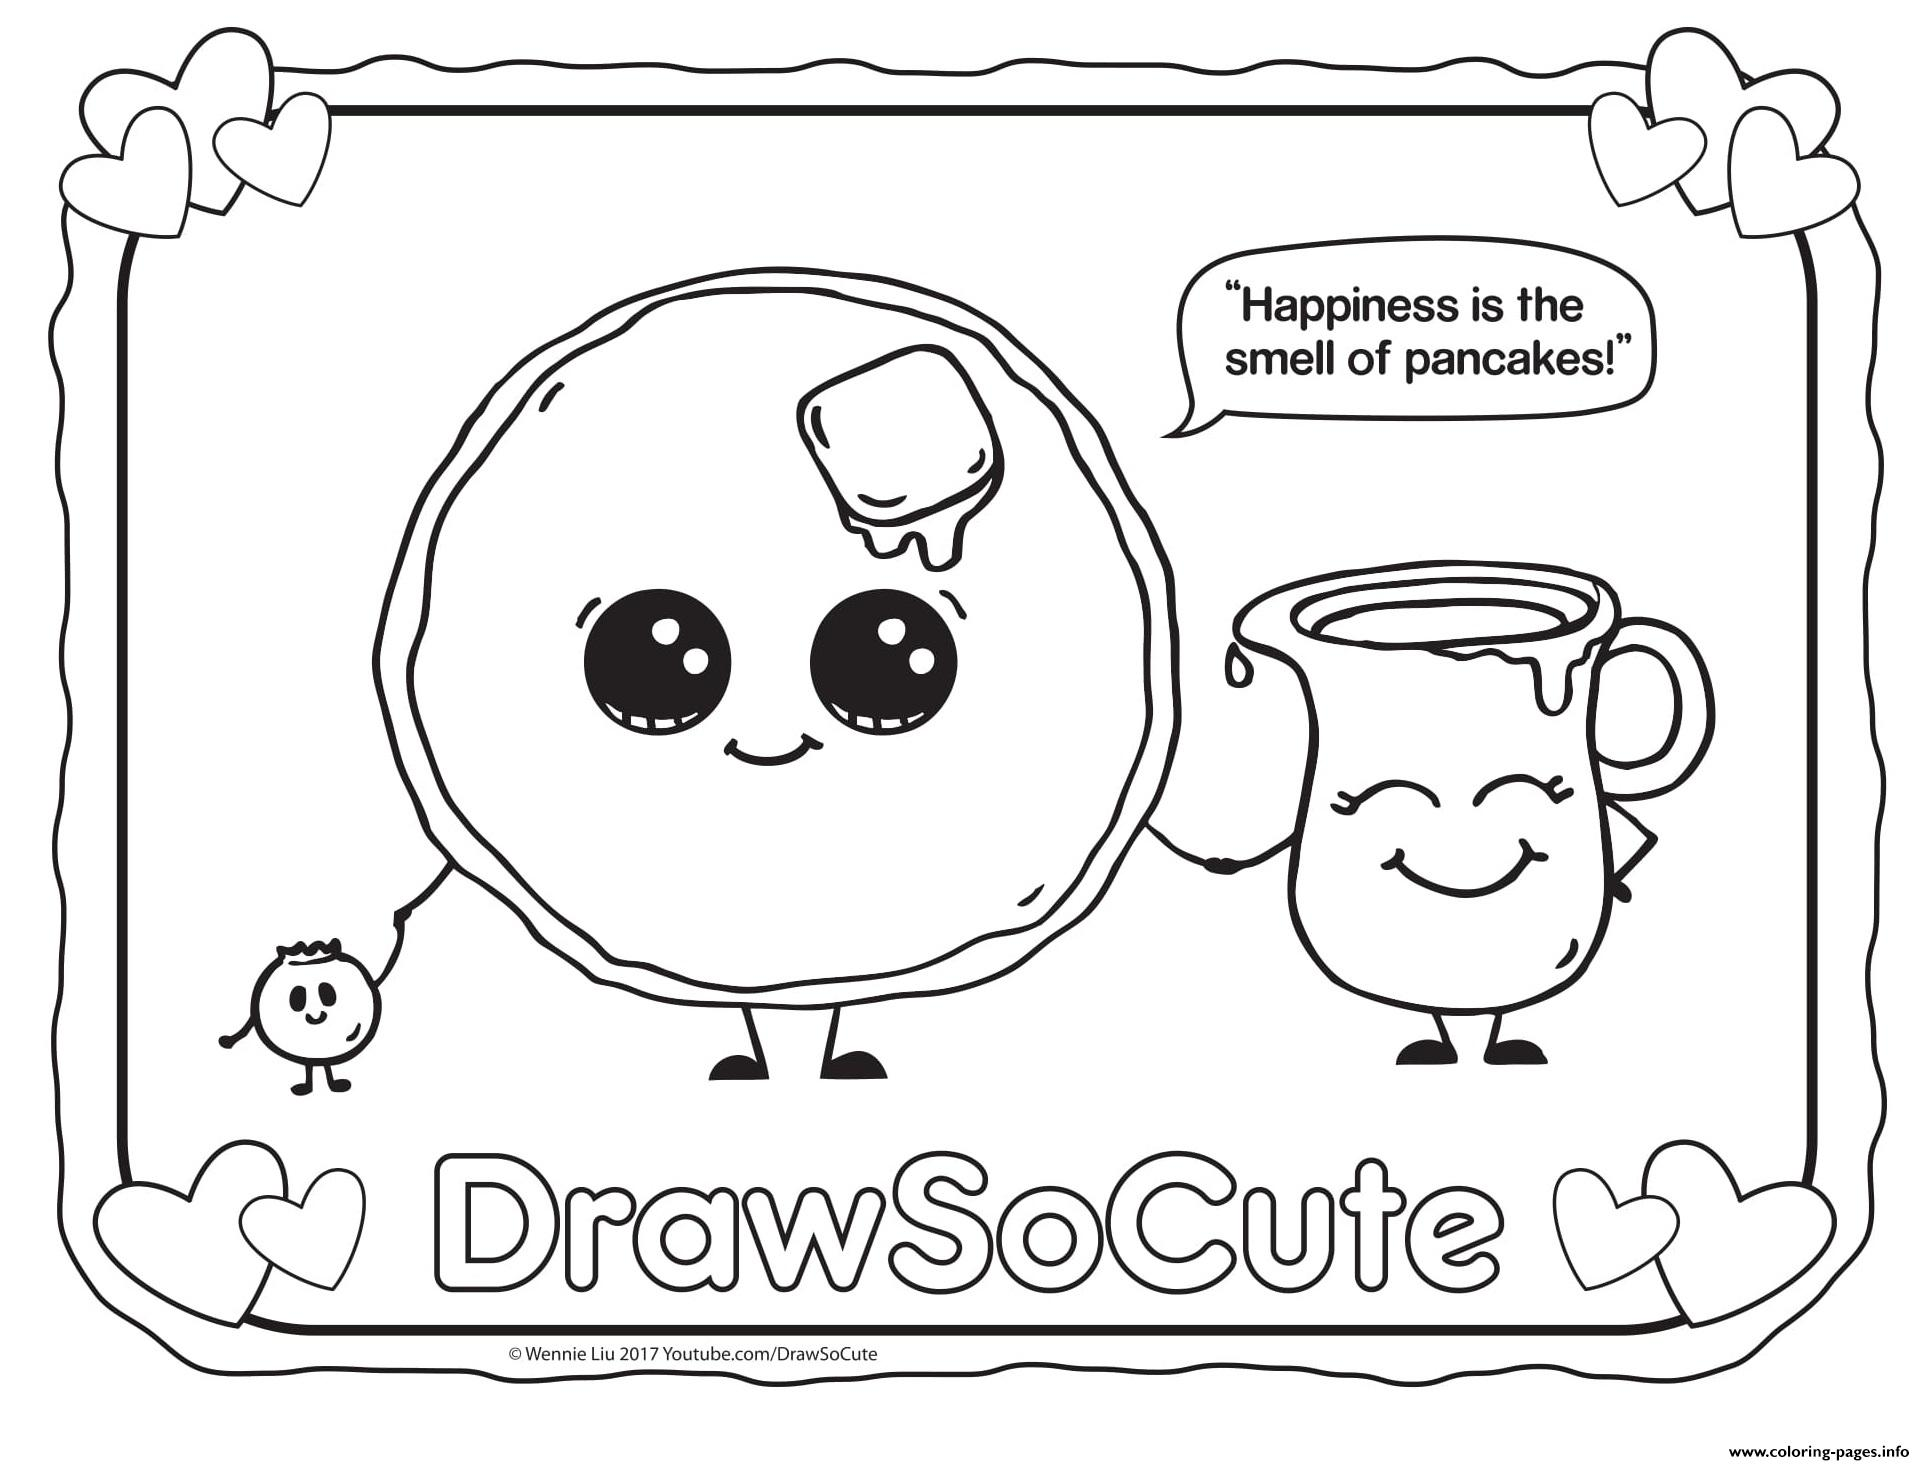 Pancake Draw So Cute coloring pages